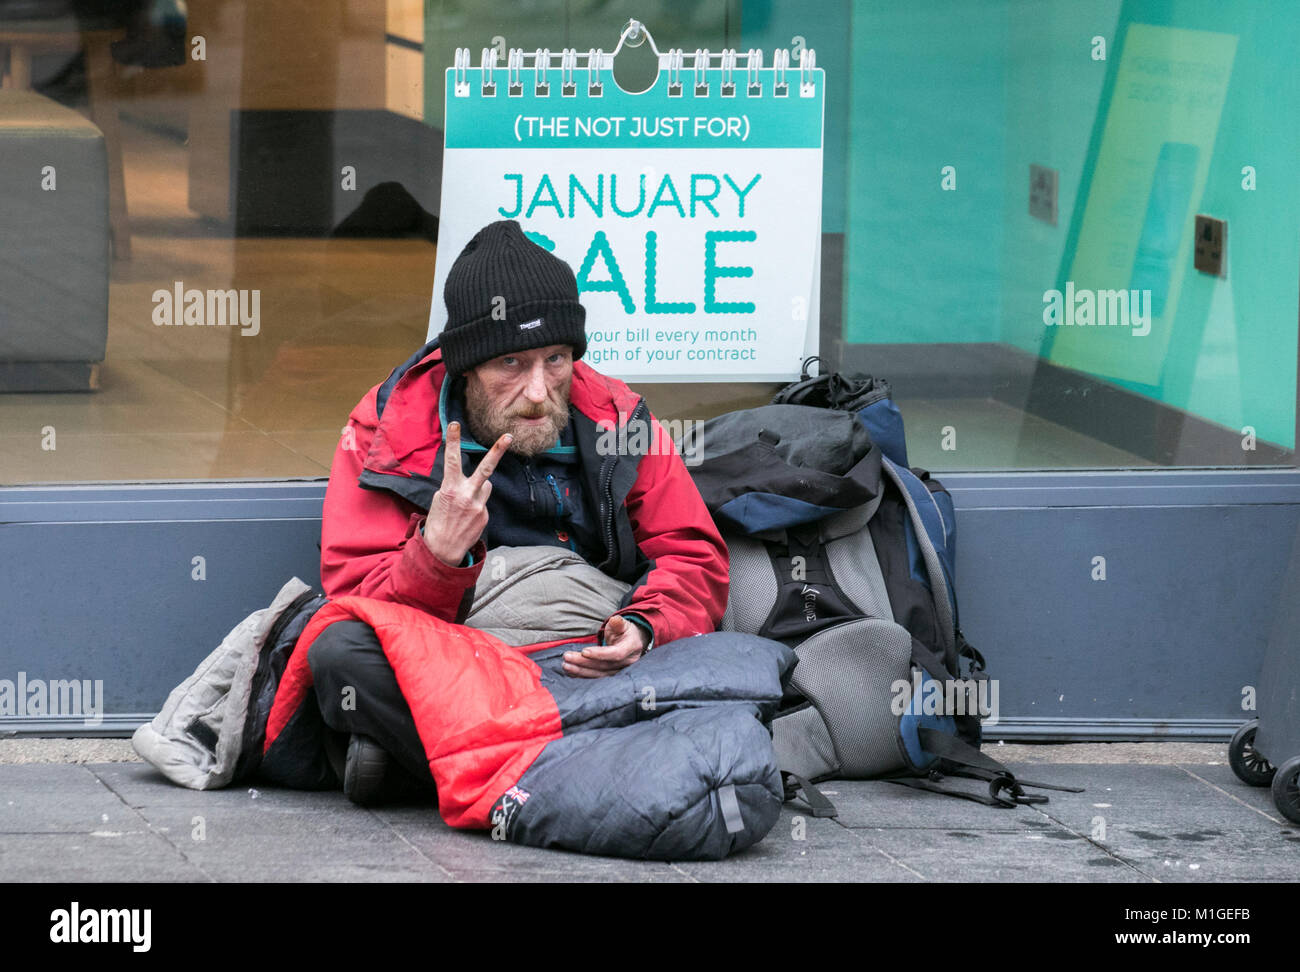 HOMELESS AND HUNGRY WOMEN CHILDREN OUT ON THE STREETS DESTITUTE POOR HISTORY